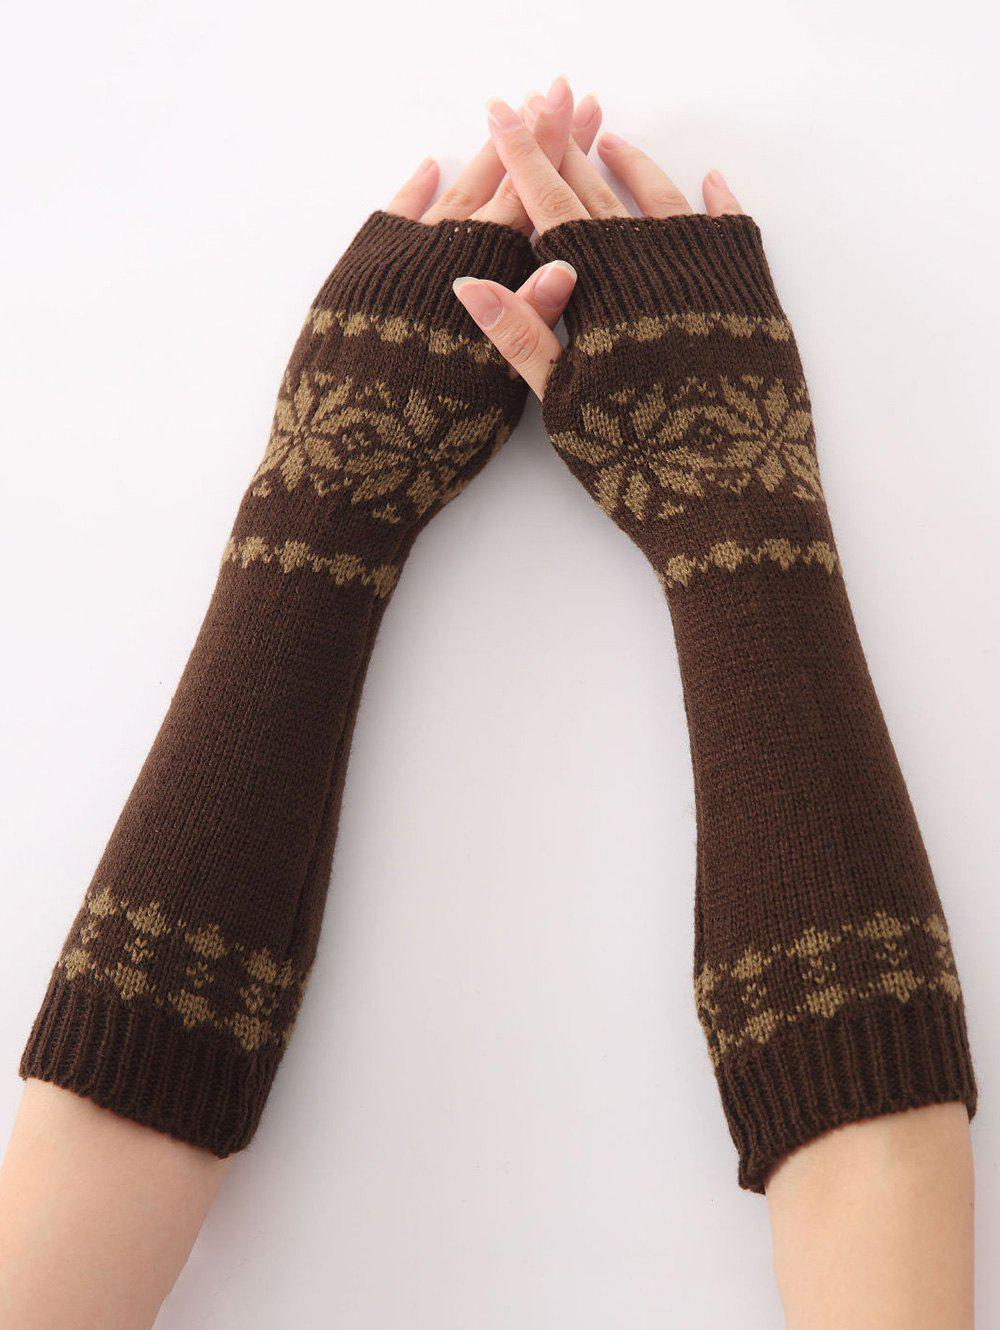 Winter Warm Christmas Snow Floral Crochet Knit Arm WarmersACCESSORIES<br><br>Color: COFFEE; Group: Adult; Gender: For Women; Style: Fashion; Glove Length: Elbow; Pattern Type: Floral; Material: Acrylic; Weight: 0.066kg; Package Contents: 1 x Arm Warmers(Pair);